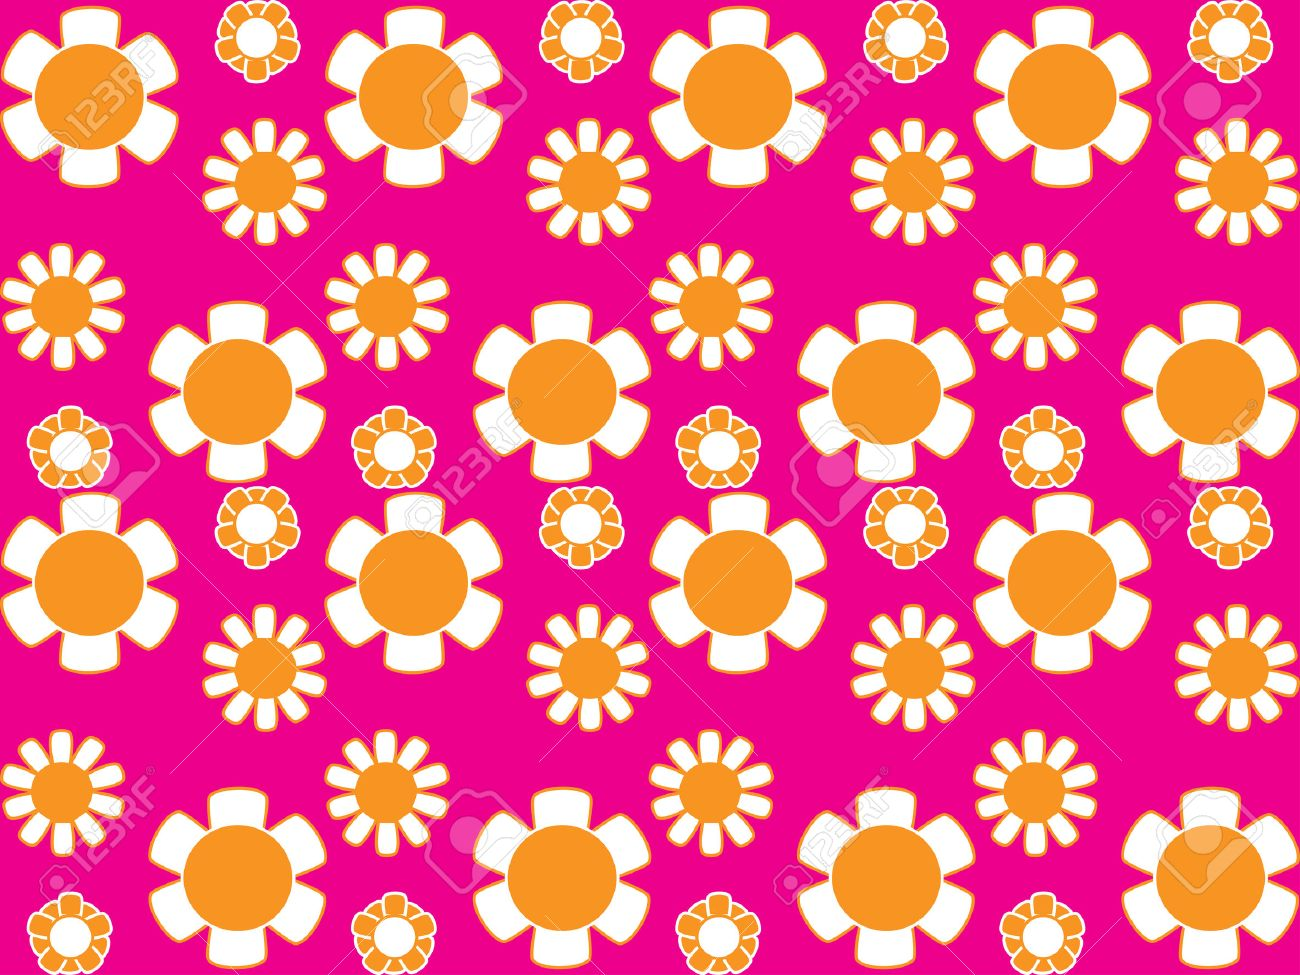 Vector image of 70s wallpaper - repeatable pattern Stock Vector - 2638177